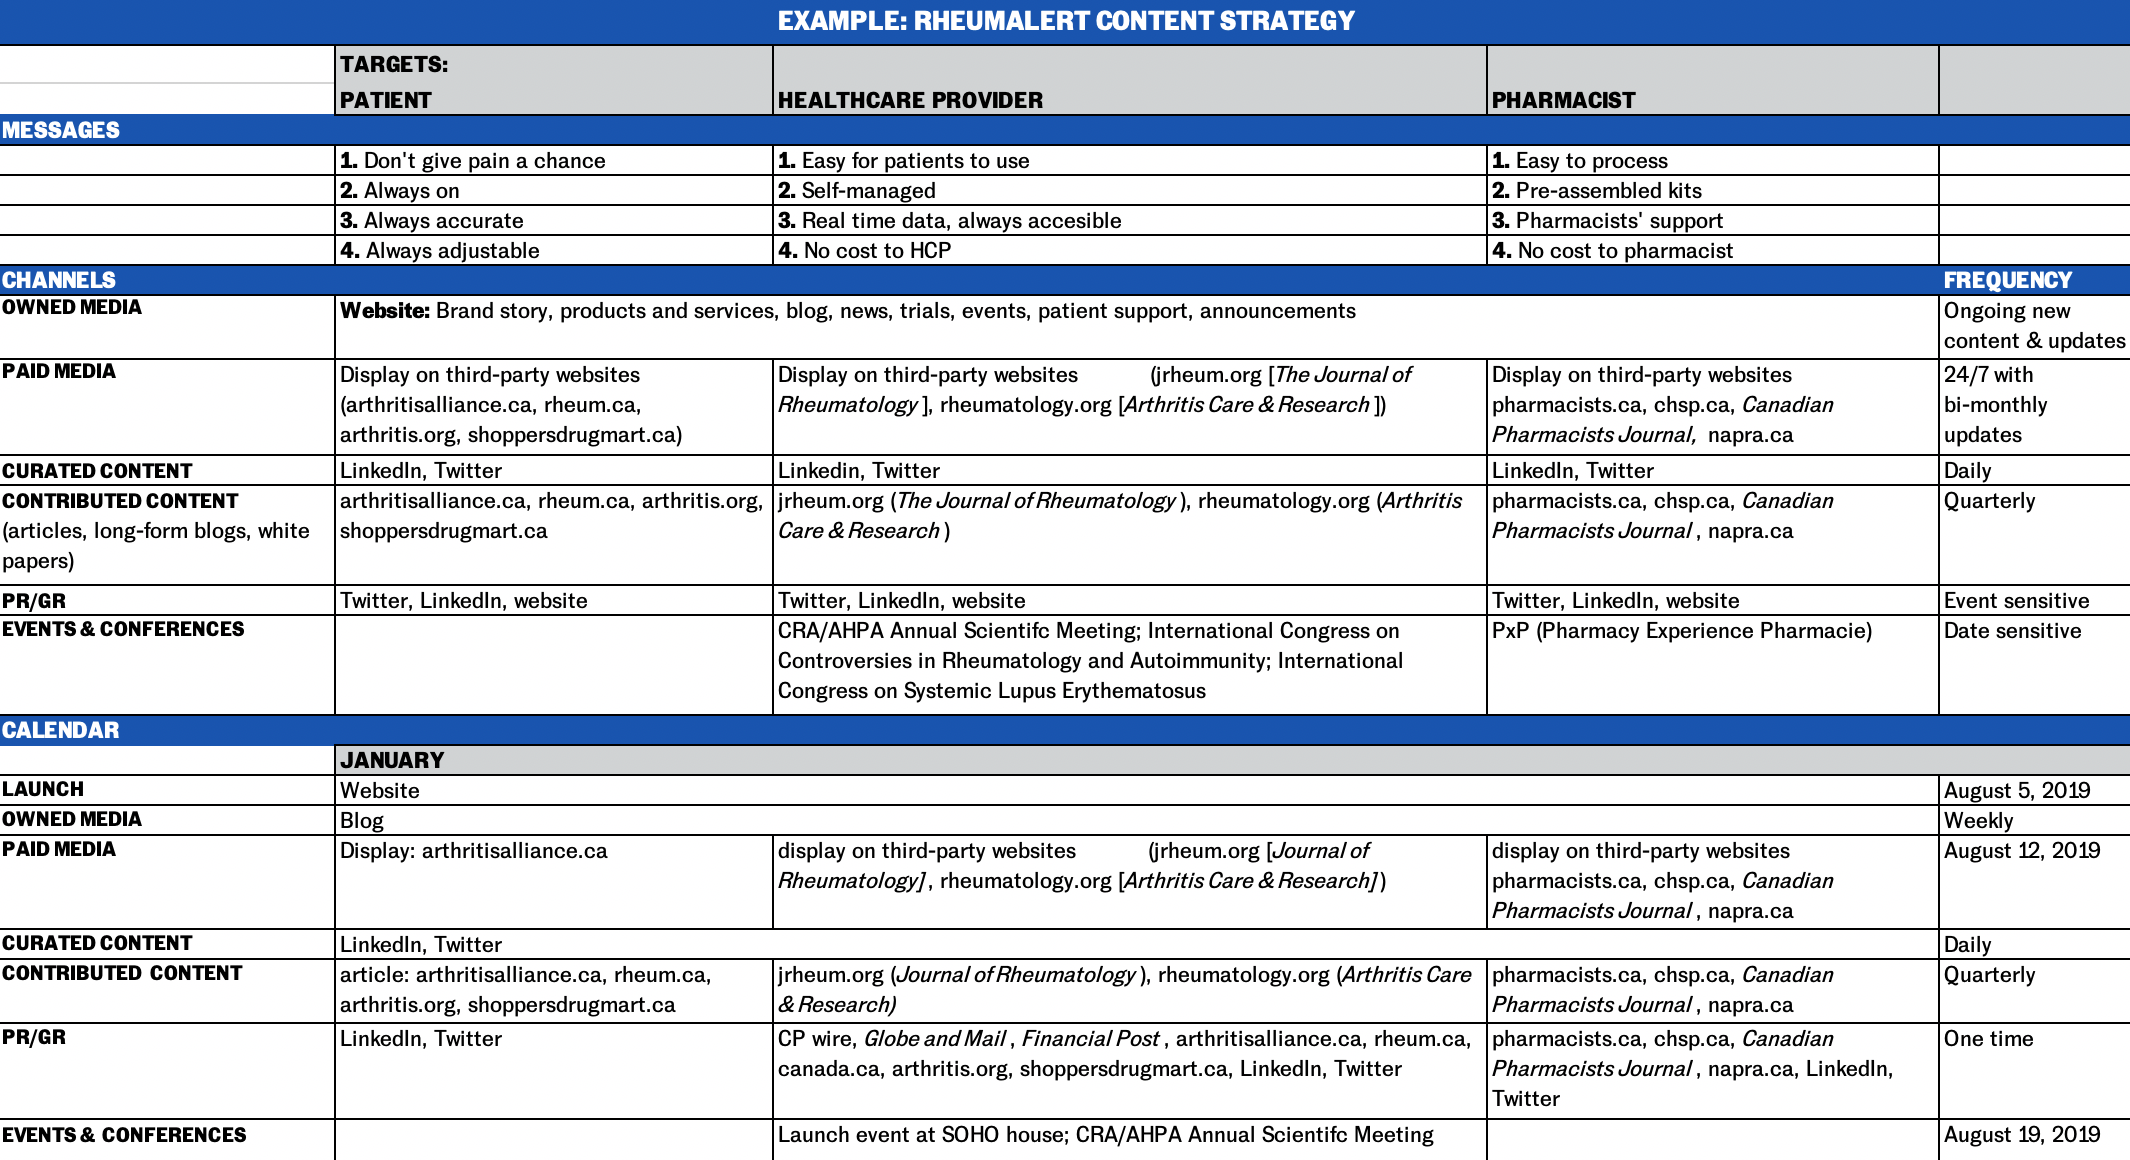 This spreadsheet shows a high-level content strategy for a fictional medtech startup.